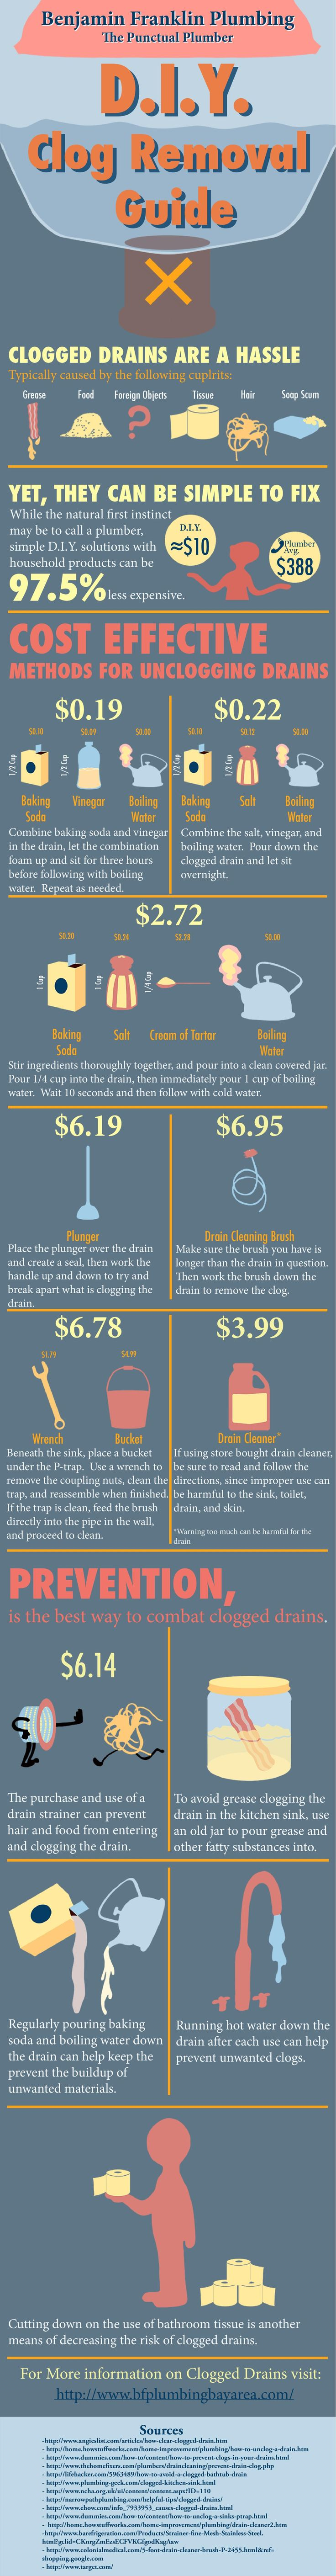 How to get the Best Return on YOUR interior-drains D.I.Y. How To Unclog Drains Infographic Tutorials and tips for avoiding clogged drains. I would add to this: To avoid clogged drains, don't put #flushablewipes down the toilet - they are one of the newest culprits. Also - Drain Care from HomeDepot contains enzymes. Use it 3 days in a row every 4-6 weeks to keep your drains happy. Works great for hair in the shower tub too. #cloggeddrains #drains #plumbingtips #householdtips